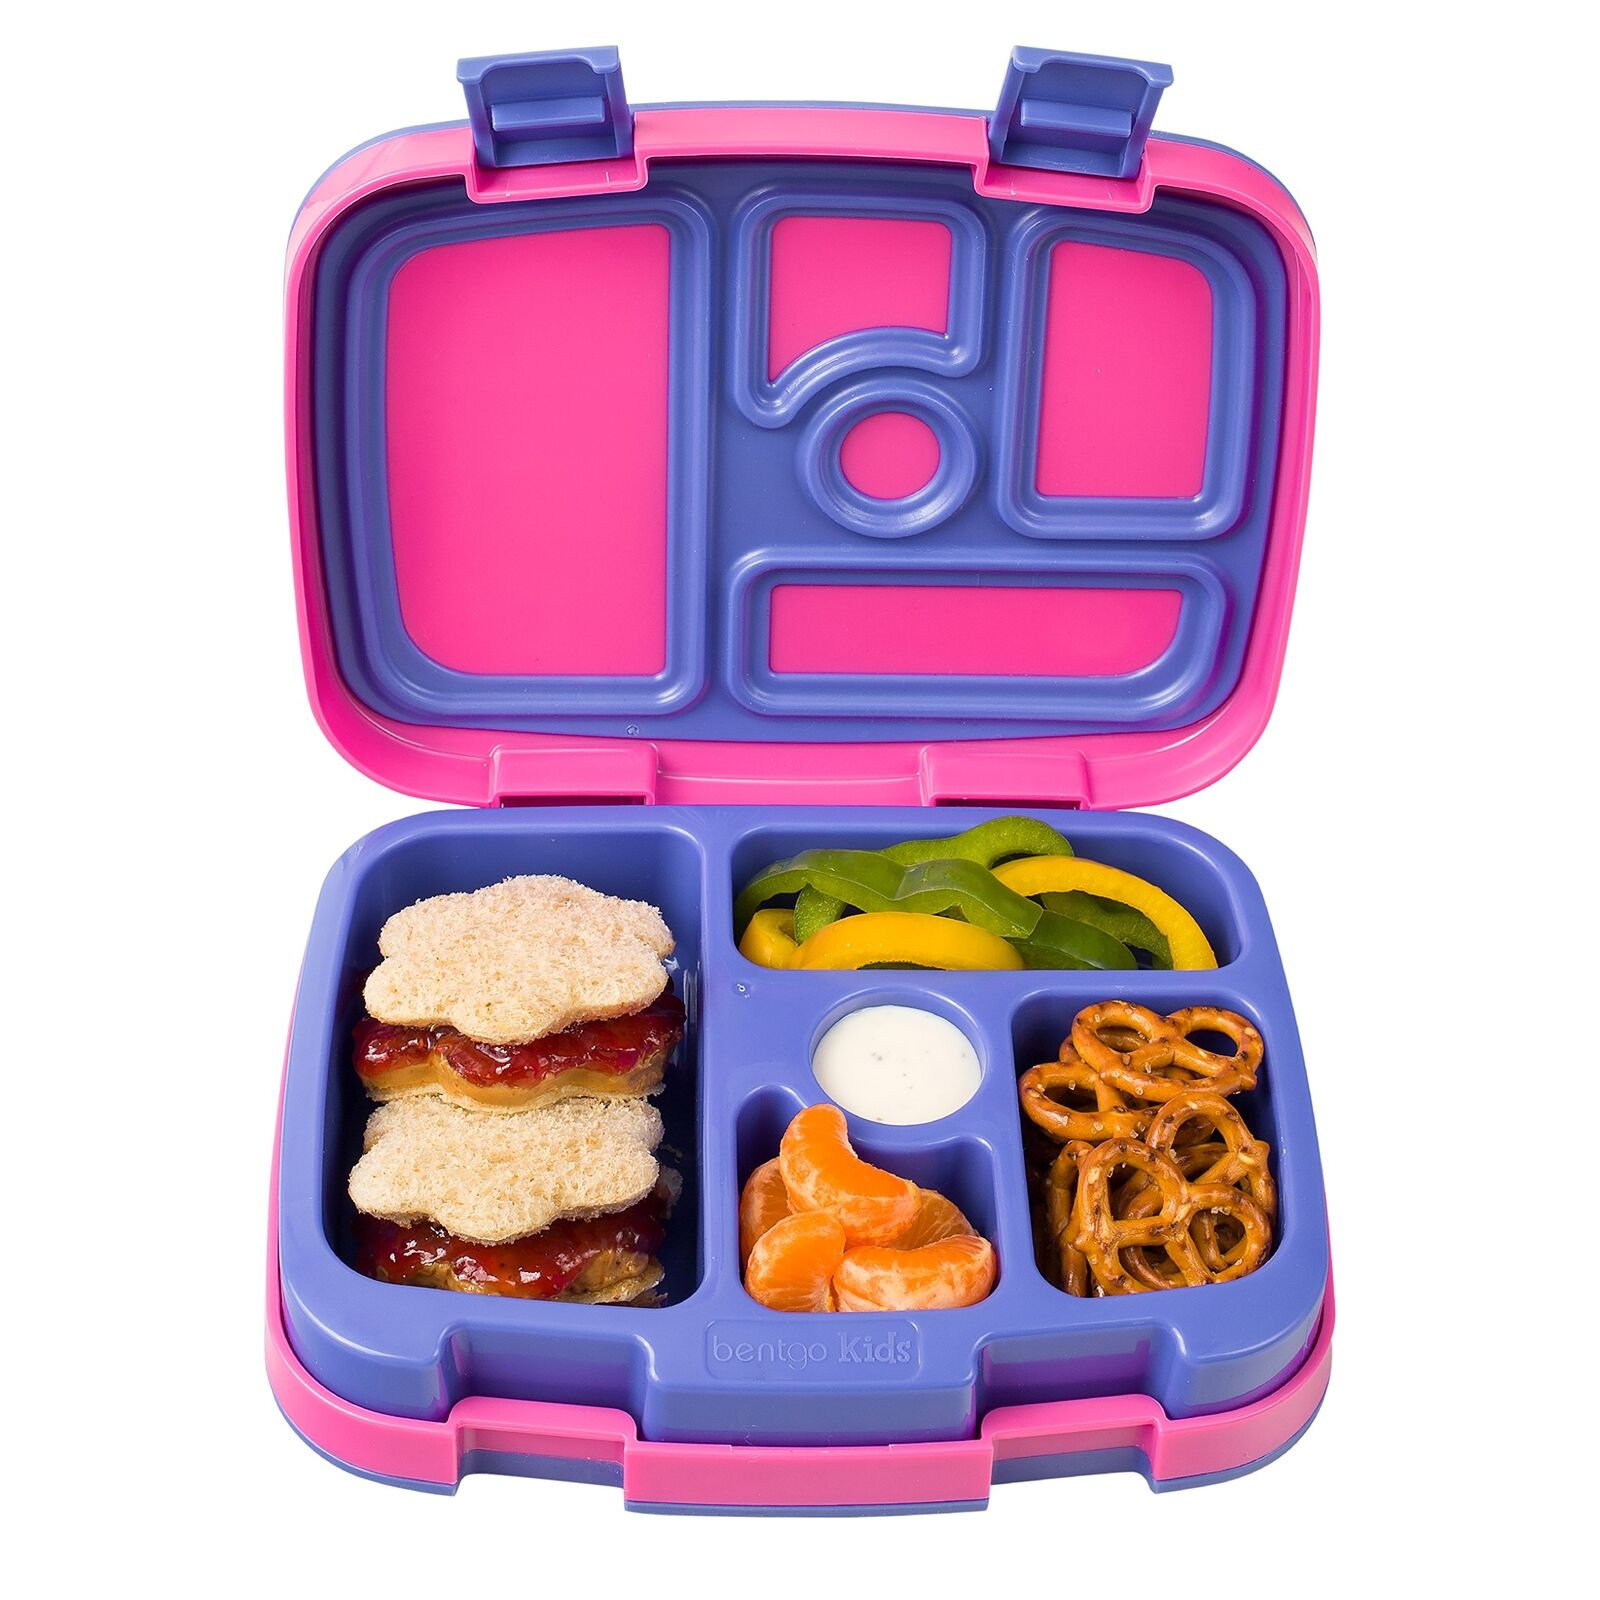 Bentgo Kids Brights – Leak-Proof, 5-Compartment Bento-Style Kids Lunch Box –